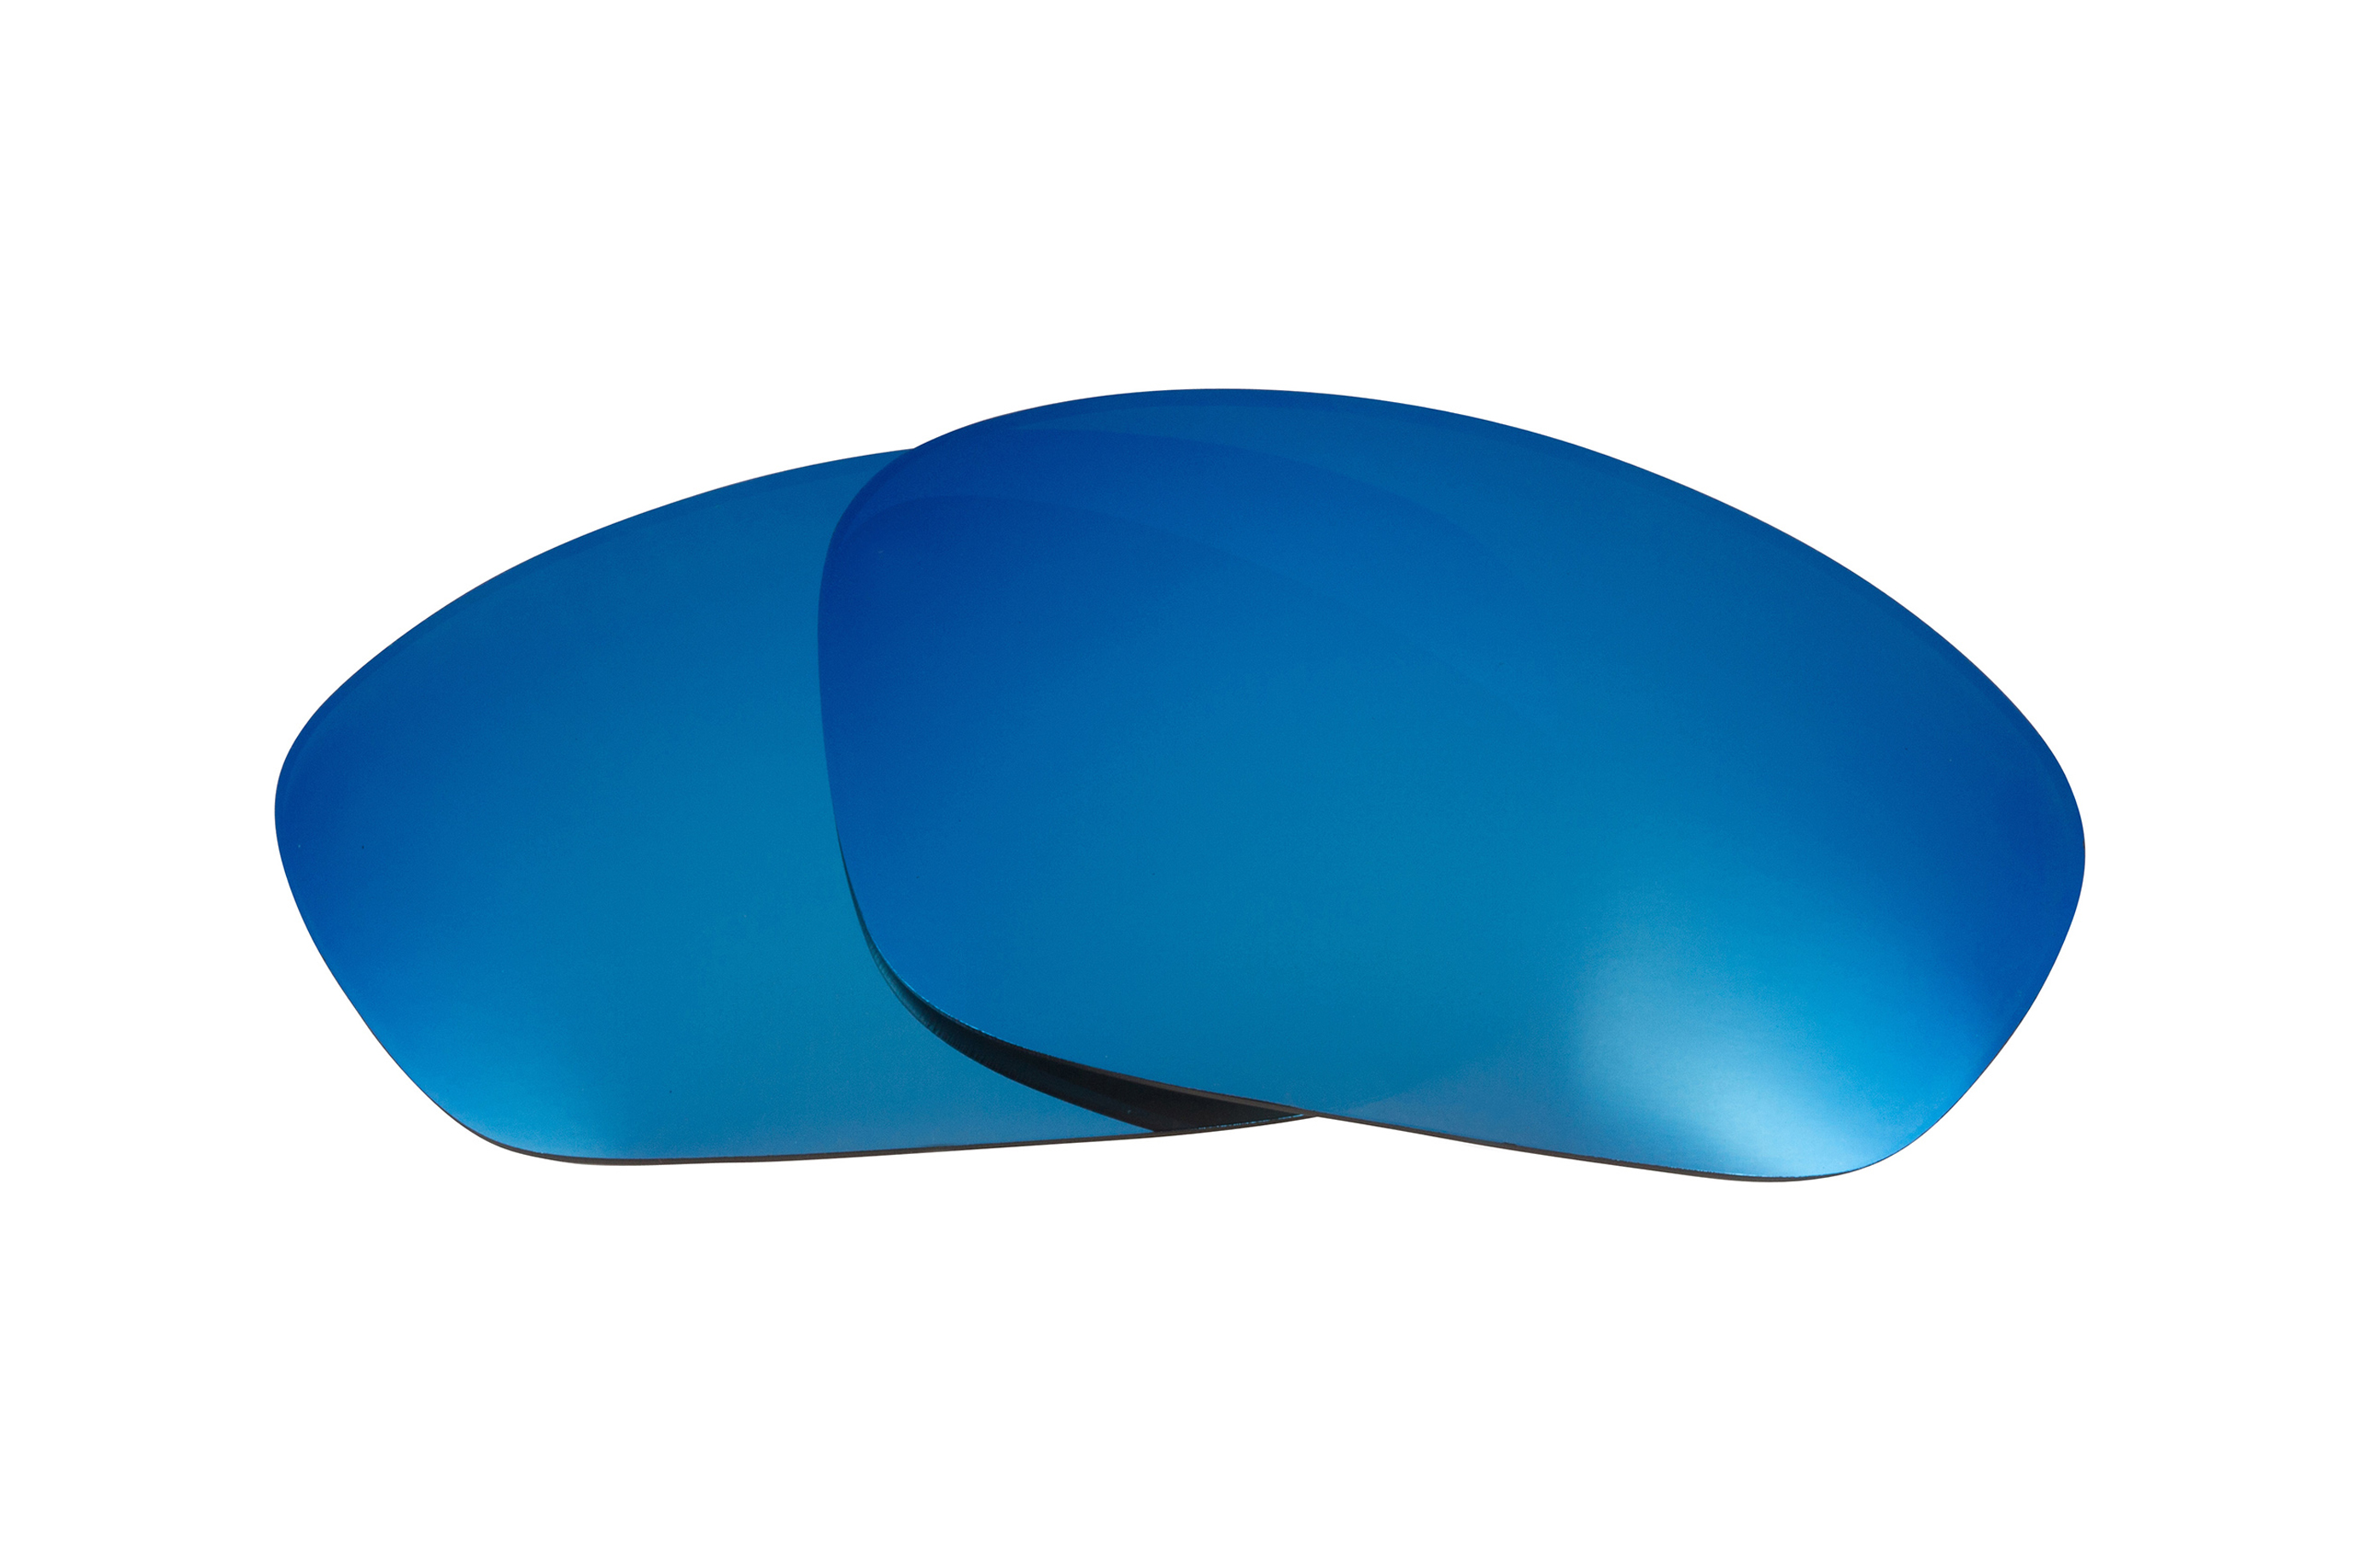 625a460d20 Seek Polarized Replacement Lenses for Oakley Straight Jacket Blue ...